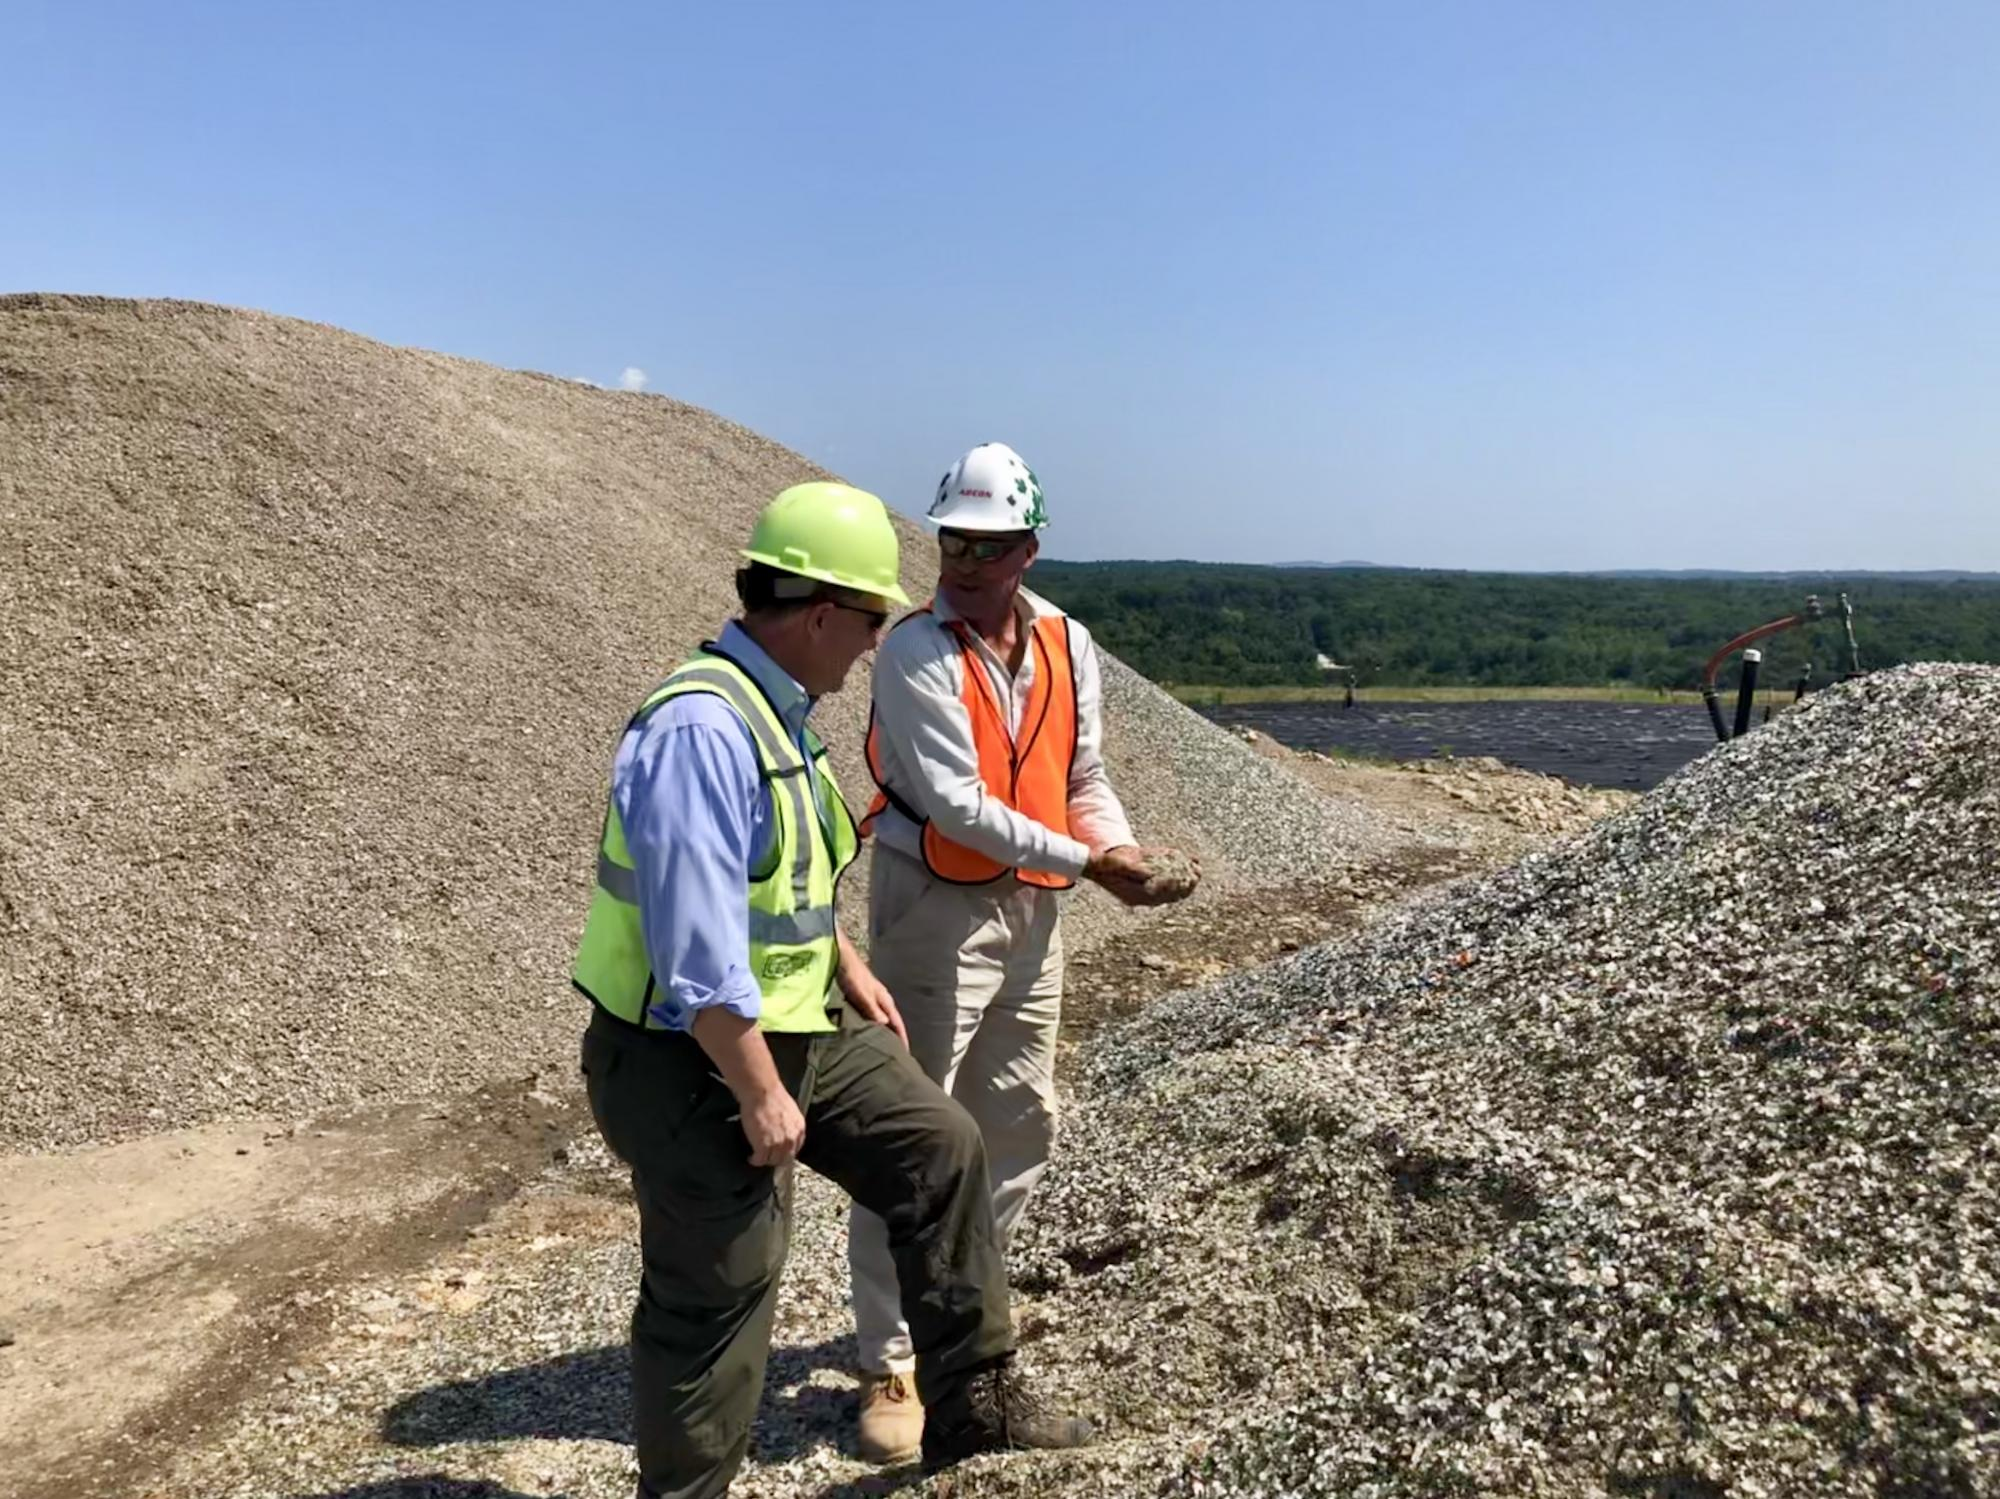 Bob Magnusson of Waste Management (left) and Ivar Martin, NRRA's glass-crushing vendor, inspect PGA material at a Waste Management facility in Rochester, N.H. that serves as one of NRRA's PGA host sites.